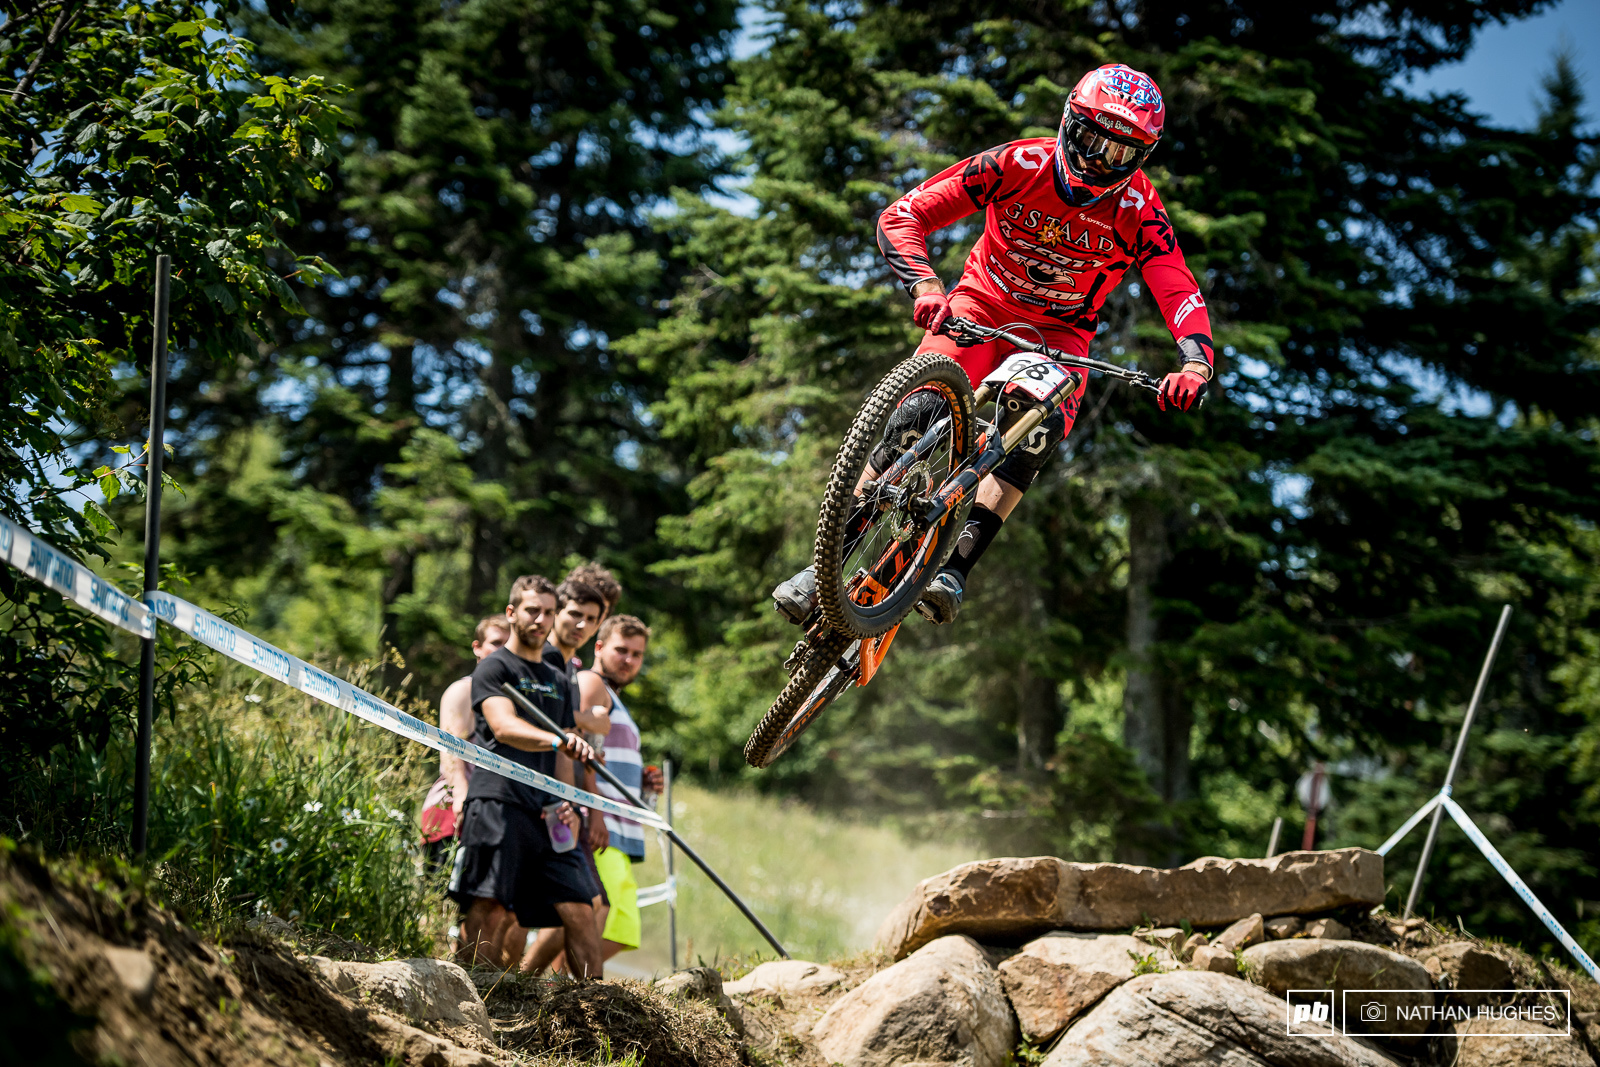 Today we welcomed Gstaad Scott s Neko Mullaly back to the gnar of the WC circuit.